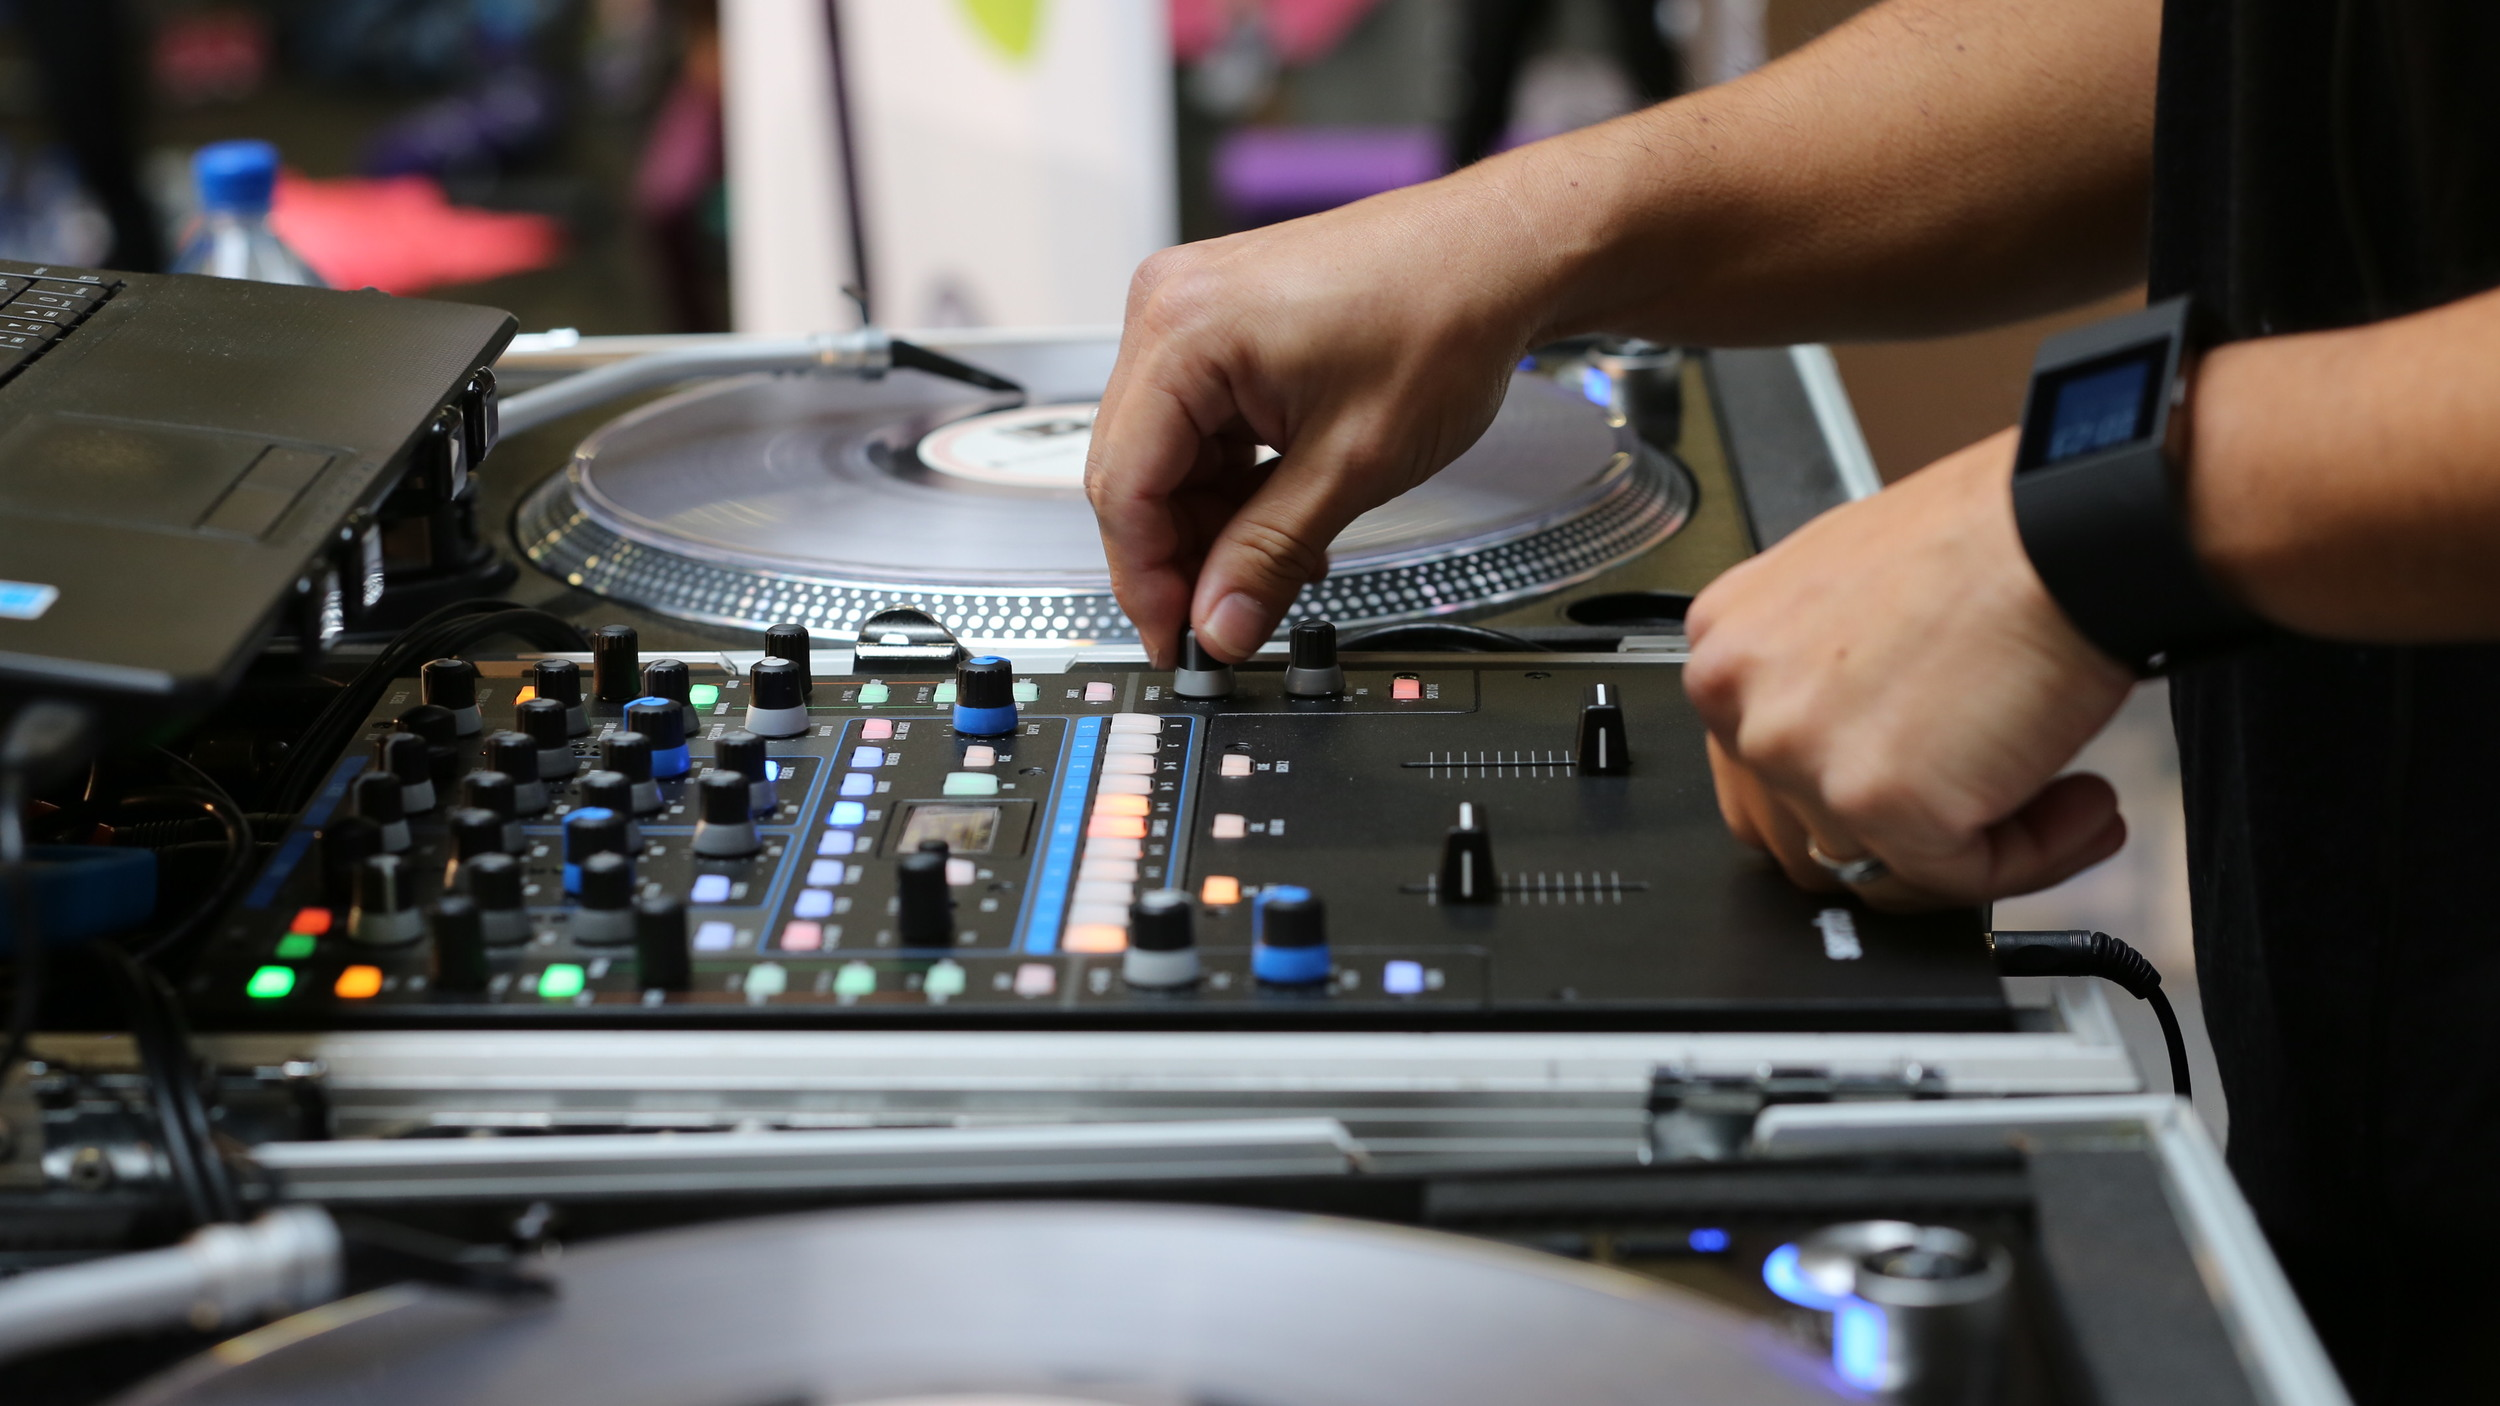 DJ Justin Kanoya explores some of the ways to find new music that works well for cocktail and dinner hours and just about any other non-dance period during an event.